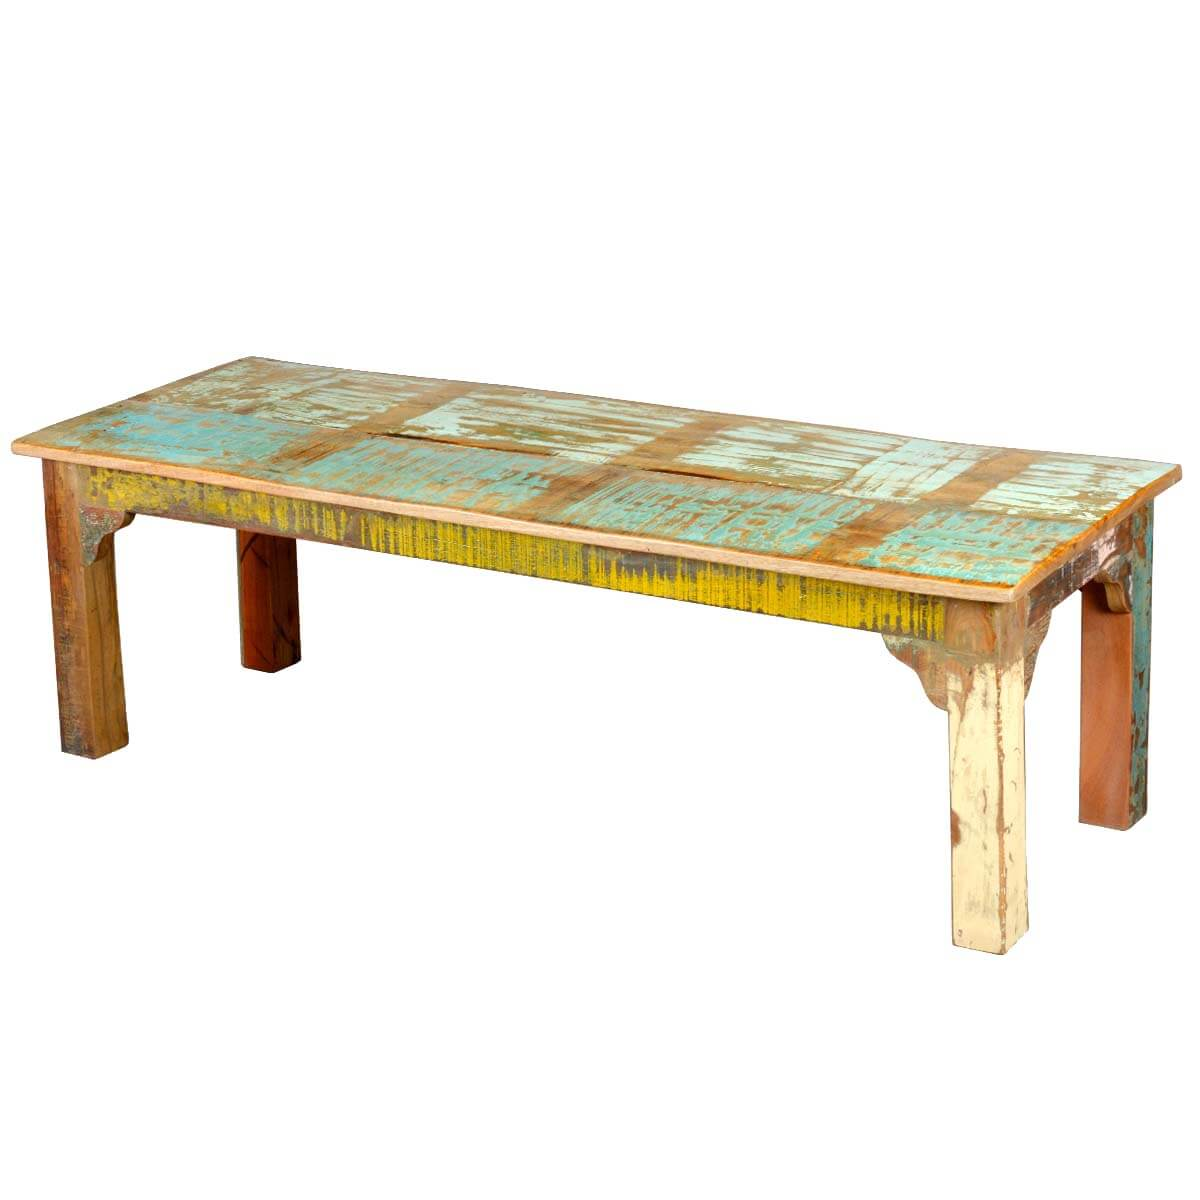 Rustic Distressed Solid Reclaimed Wood Bench